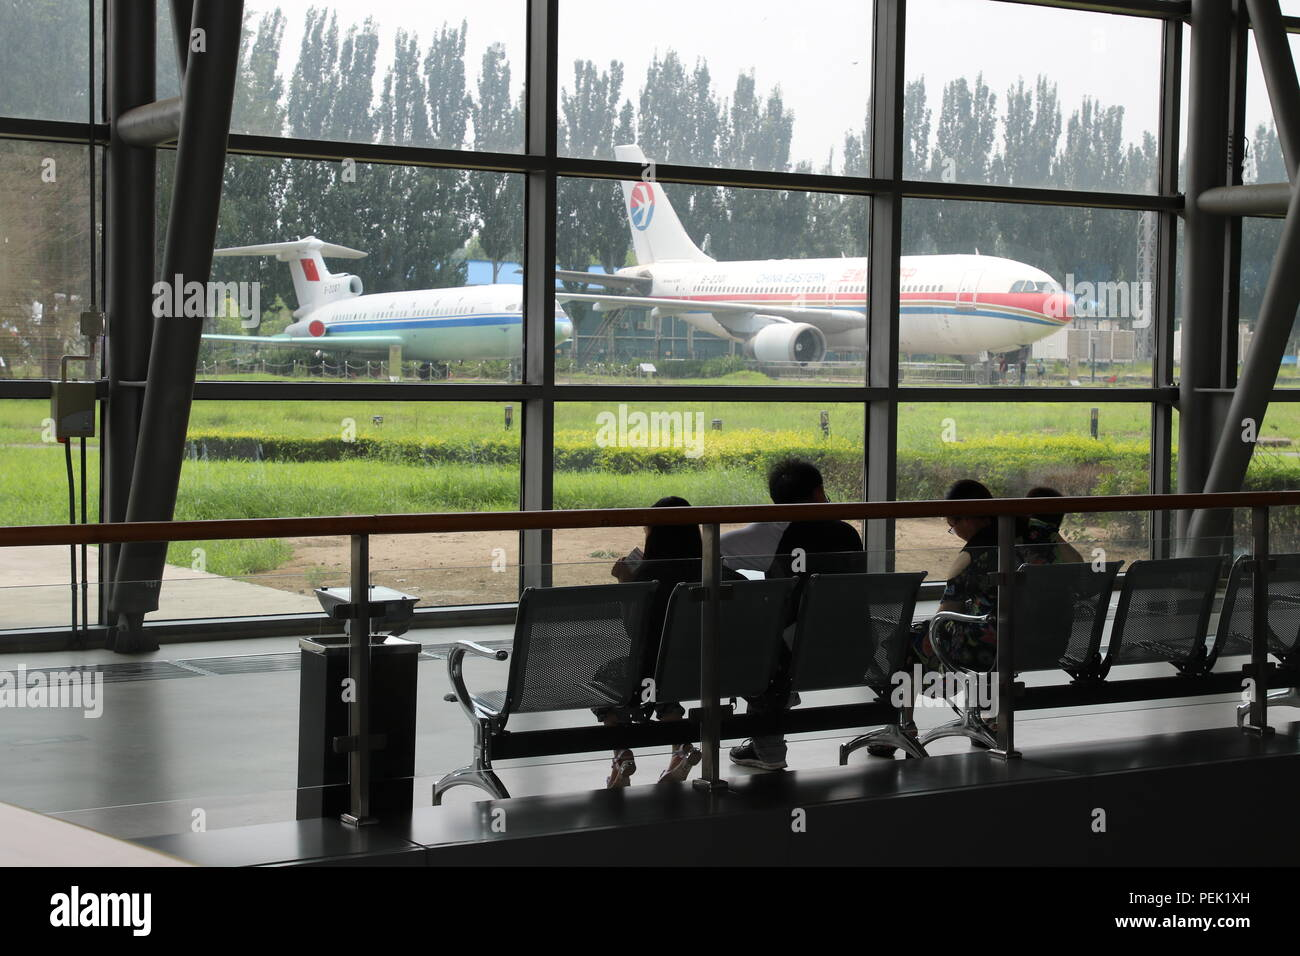 Civil Aviation Museum, Beijing, China - Stock Image